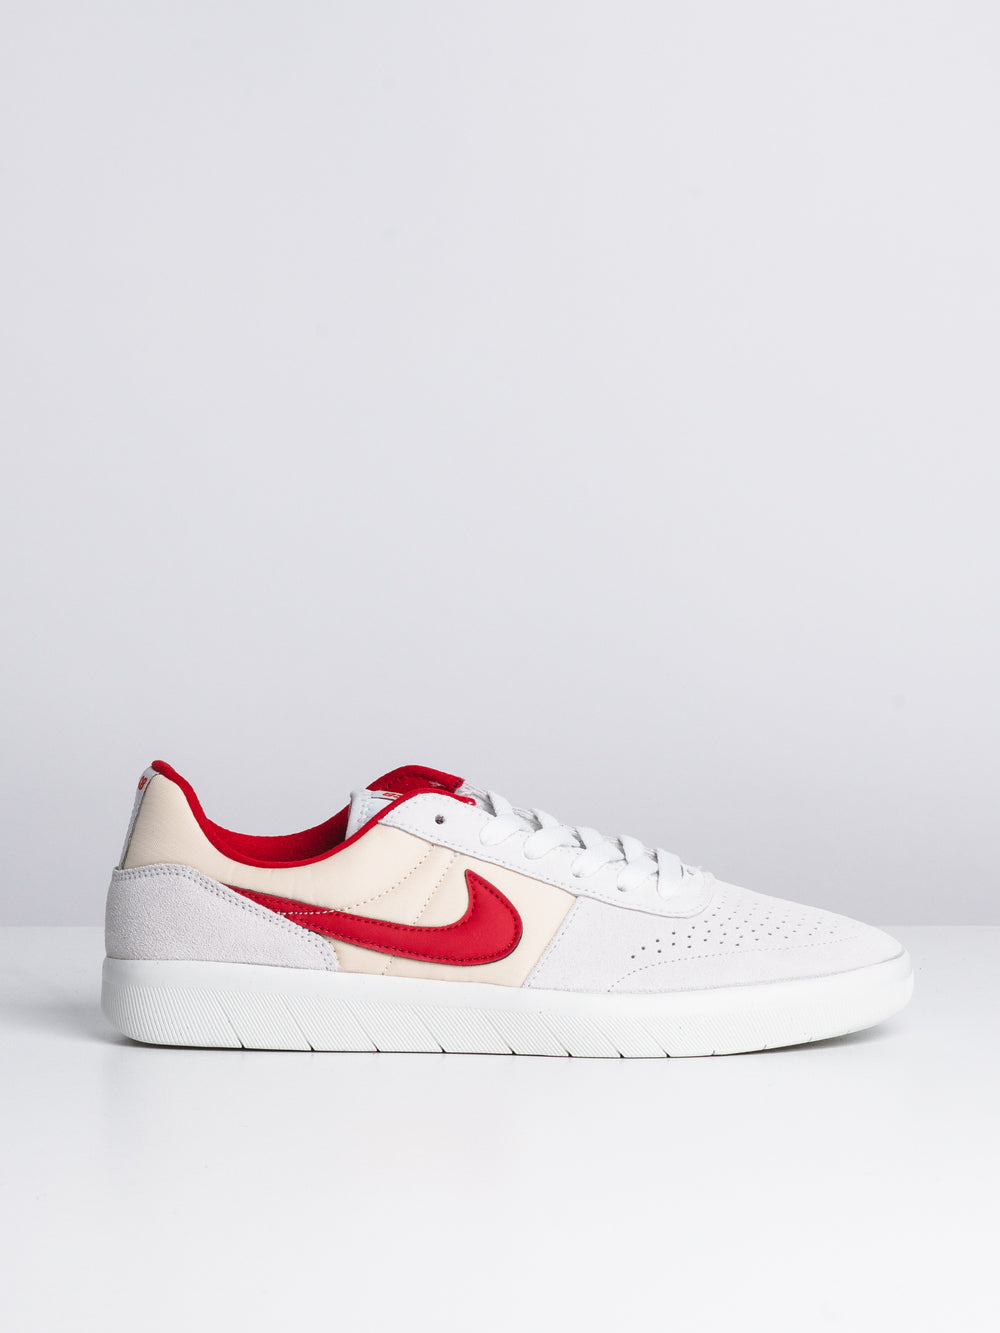 MENS NIKE SB TEAM CLASSIC - DUST